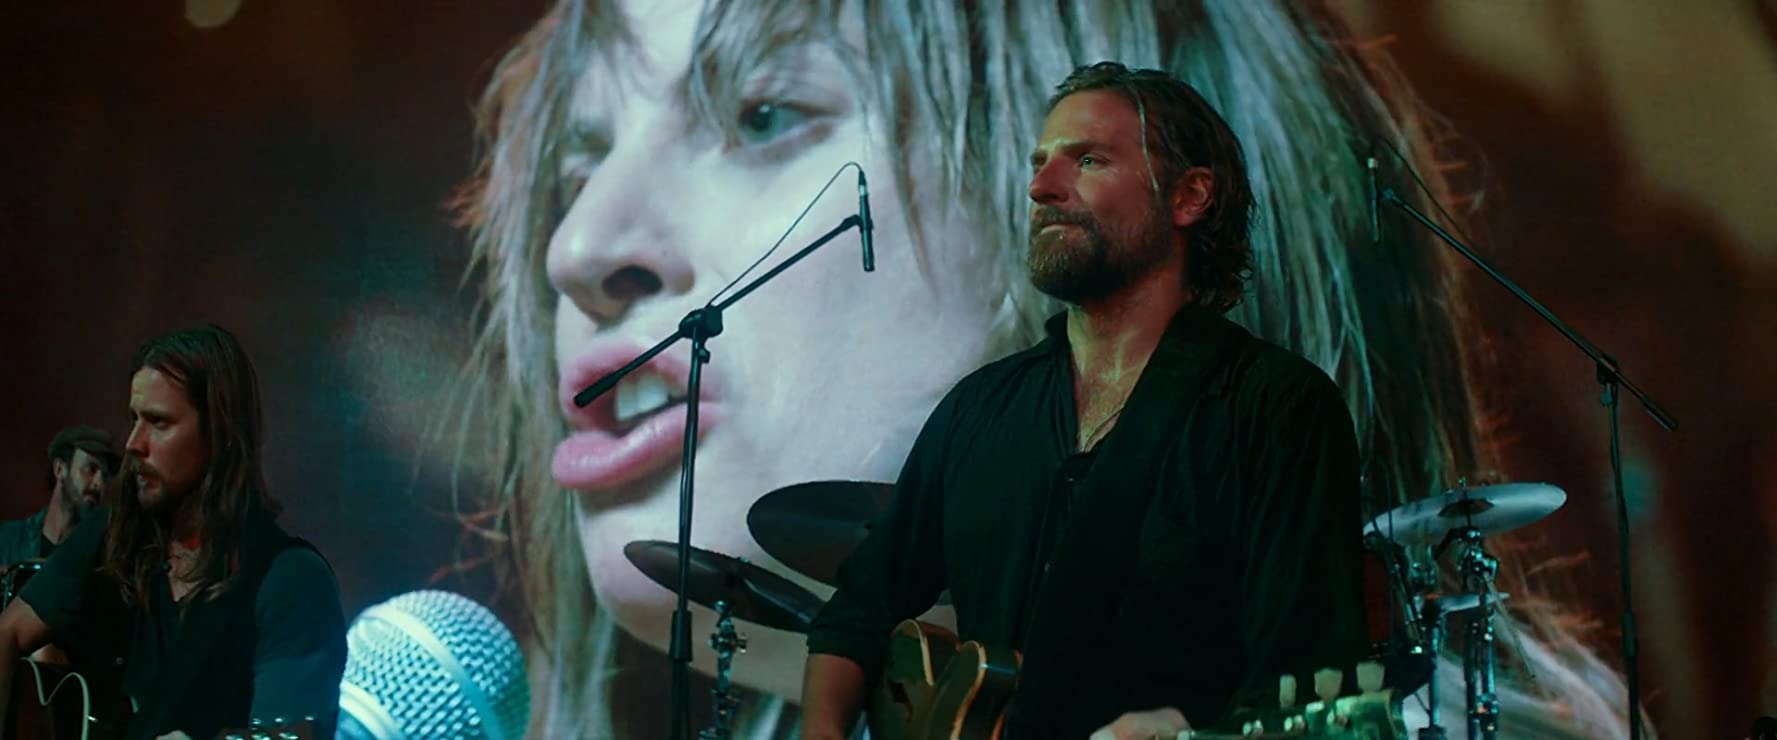 Bradley Cooper, Lukas Nelson, Lady Gaga, and Tato Melgar in A Star Is Born (2018)